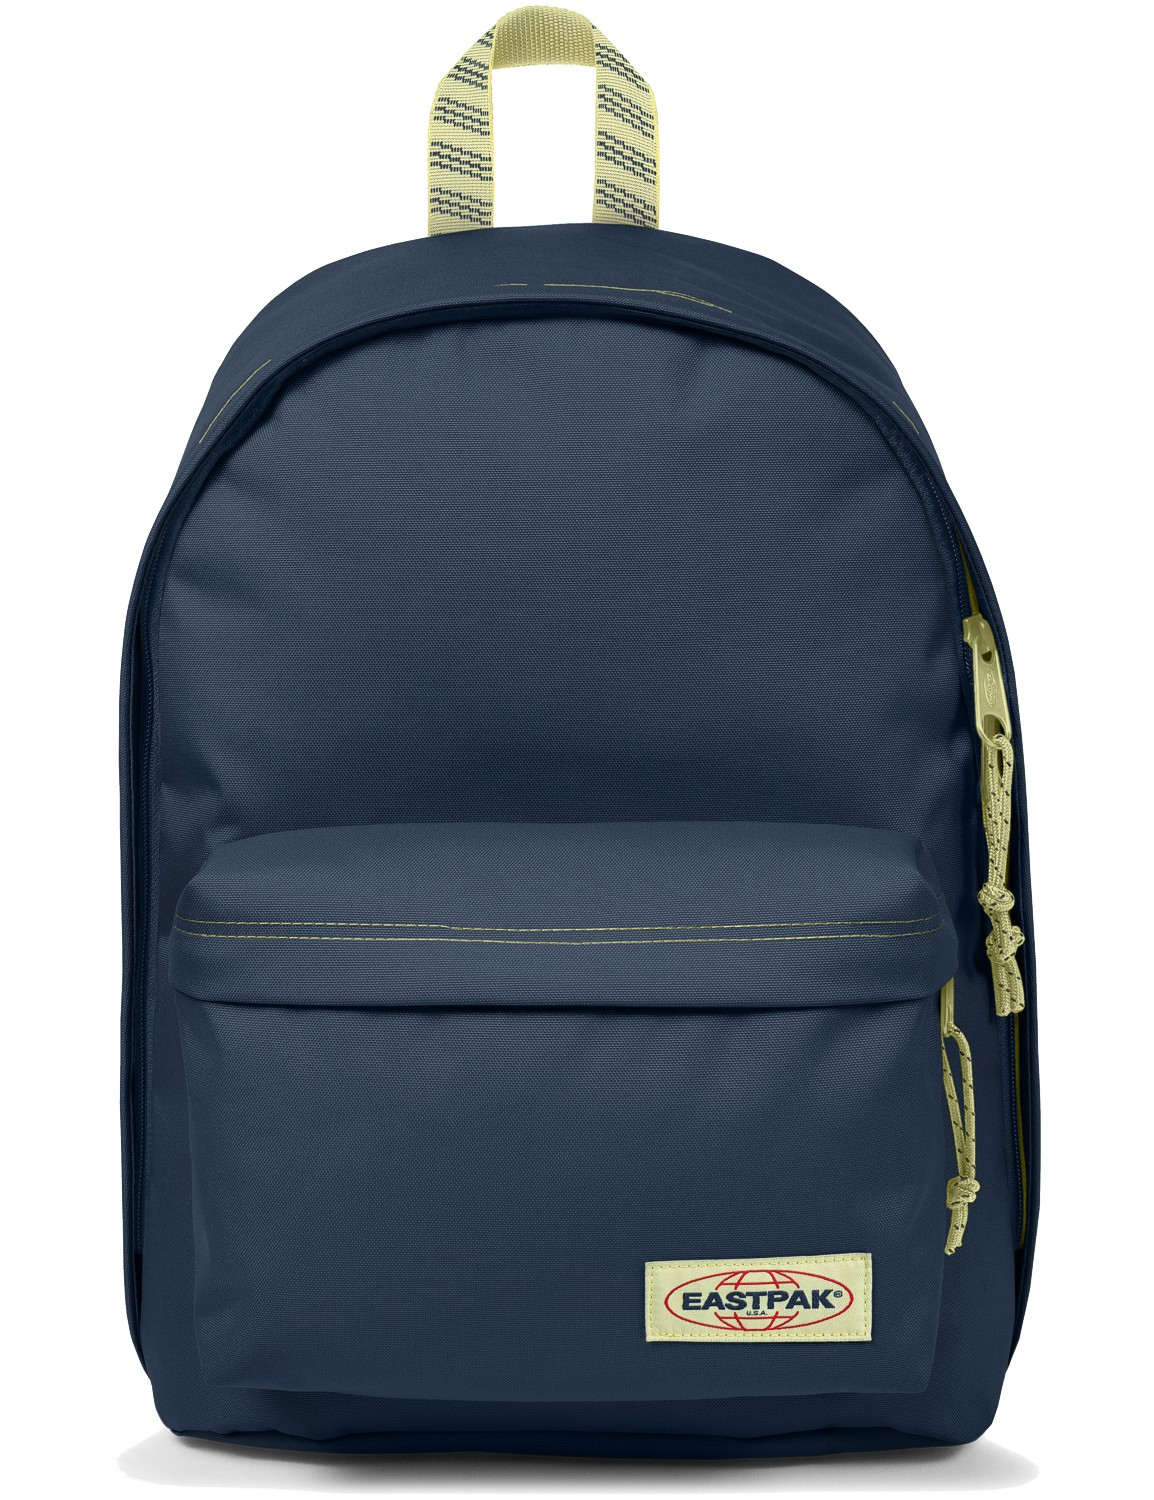 Eastpak Rucksack »Out of Office« mit Laptopfach Blakout Stripe Icy Blau